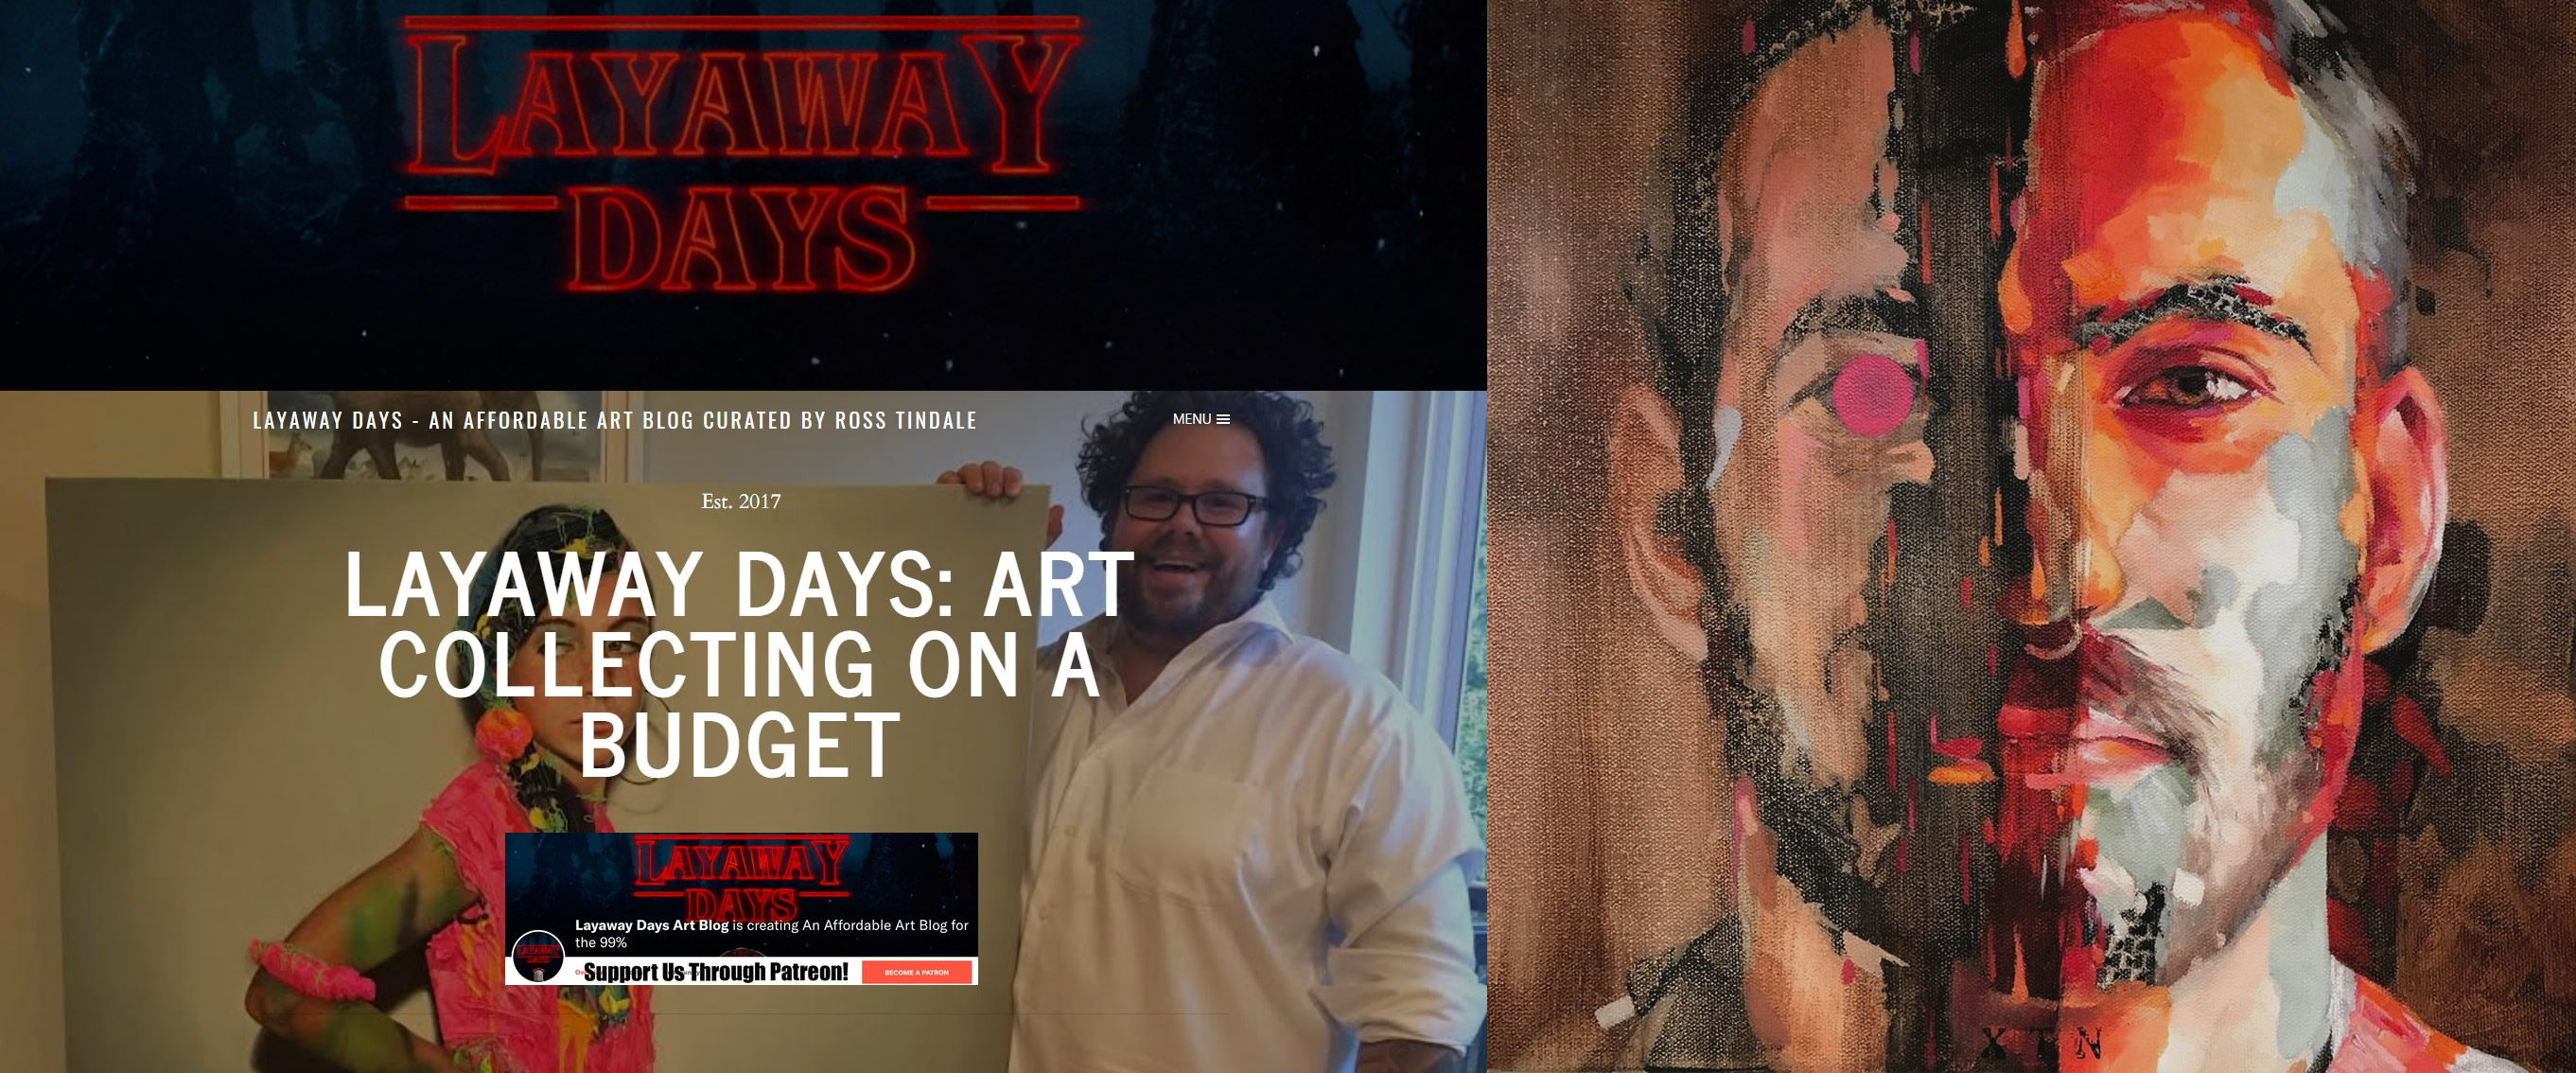 Artists Profile - Layaway Days Blog